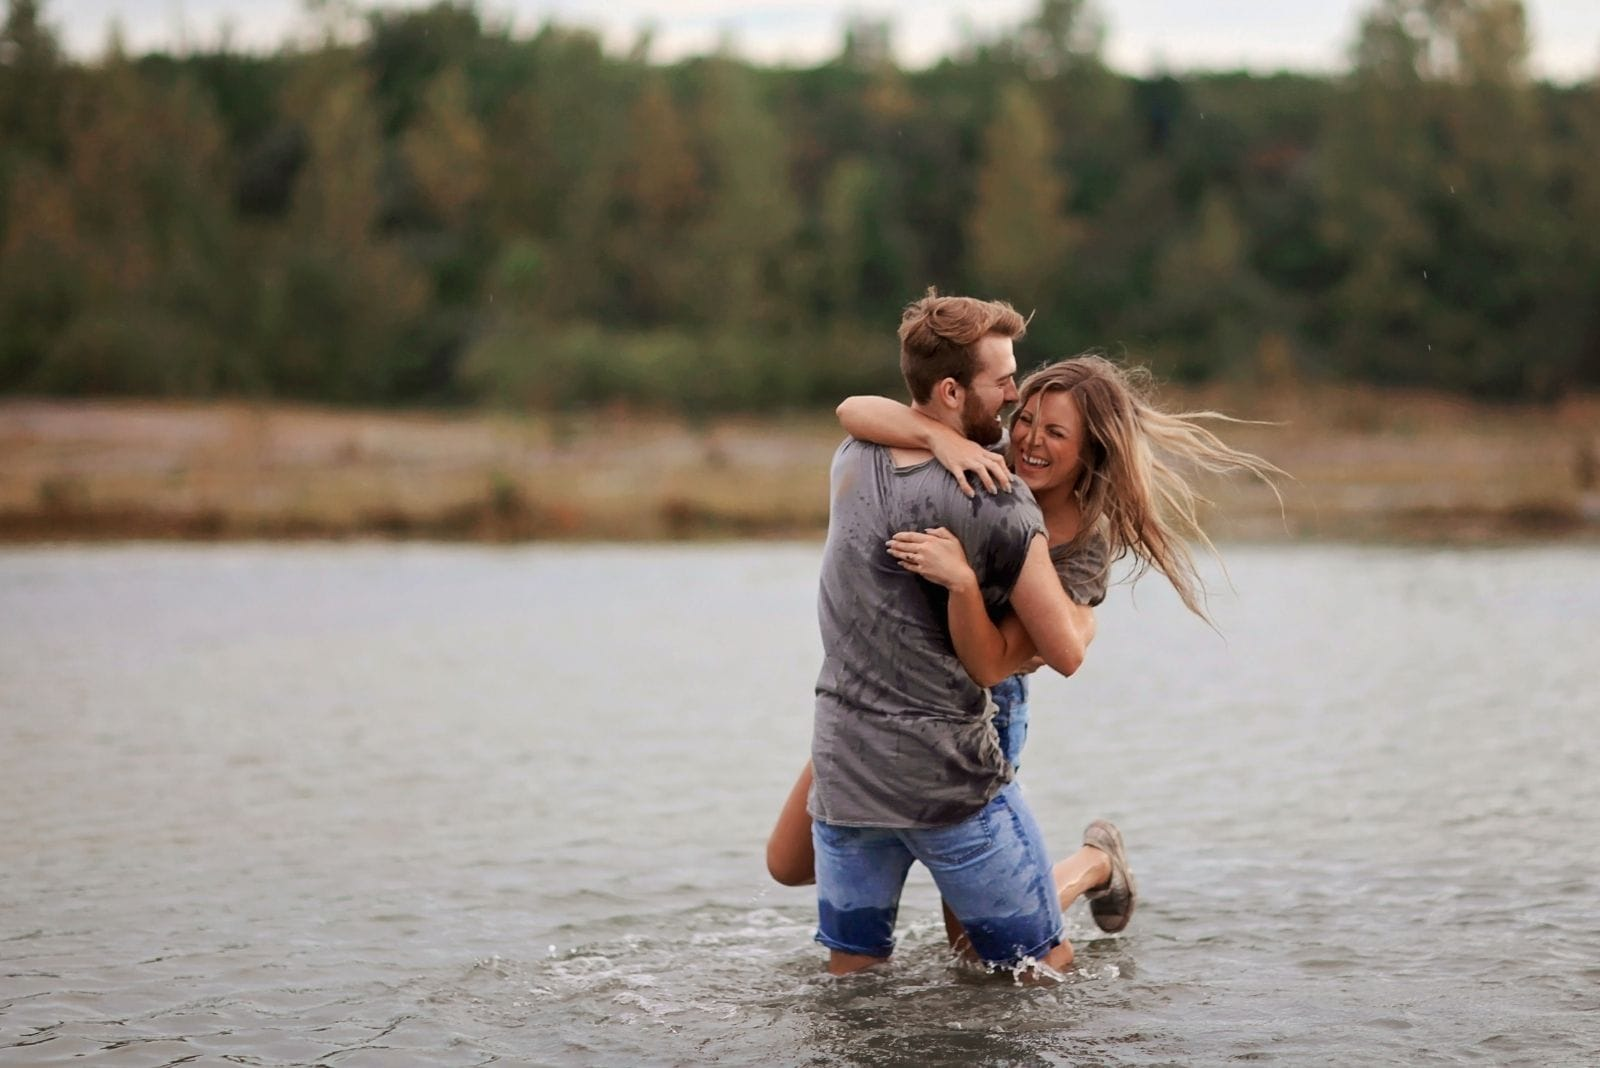 man hugging and playing with his girlfriend in the waters by lifting her laughing